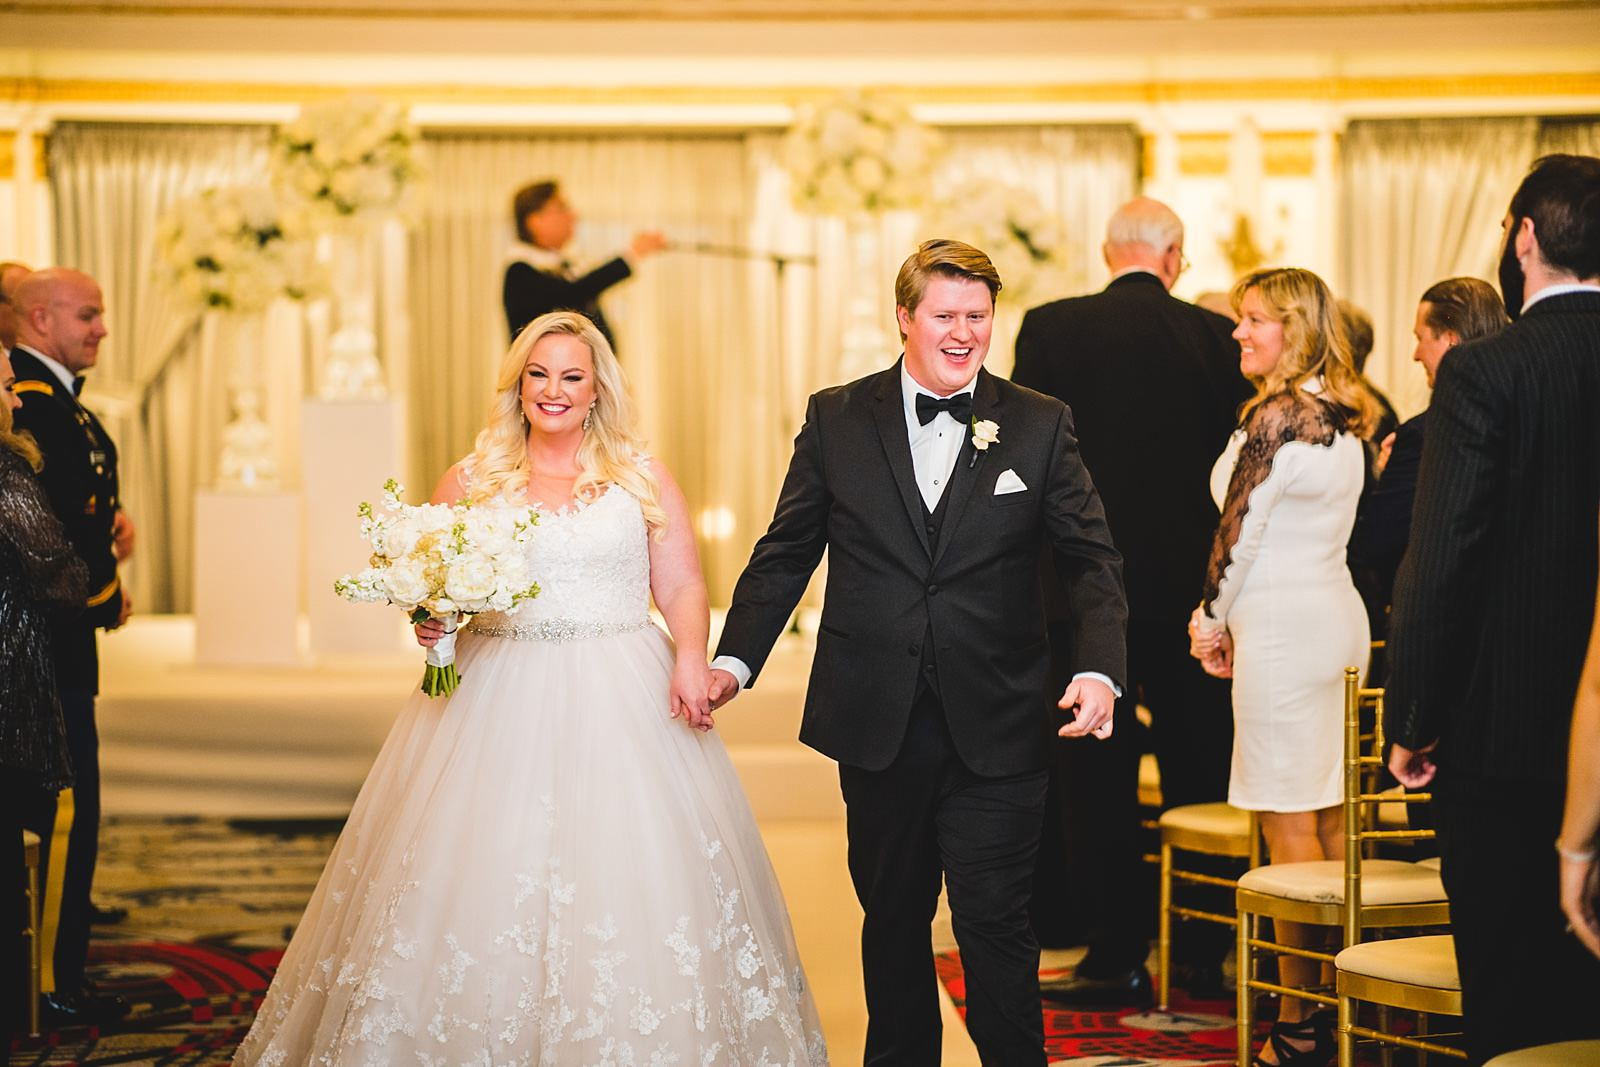 25 happy bride and groom married - Drake Chicago Luxury Wedding Photography // Kate + Royce